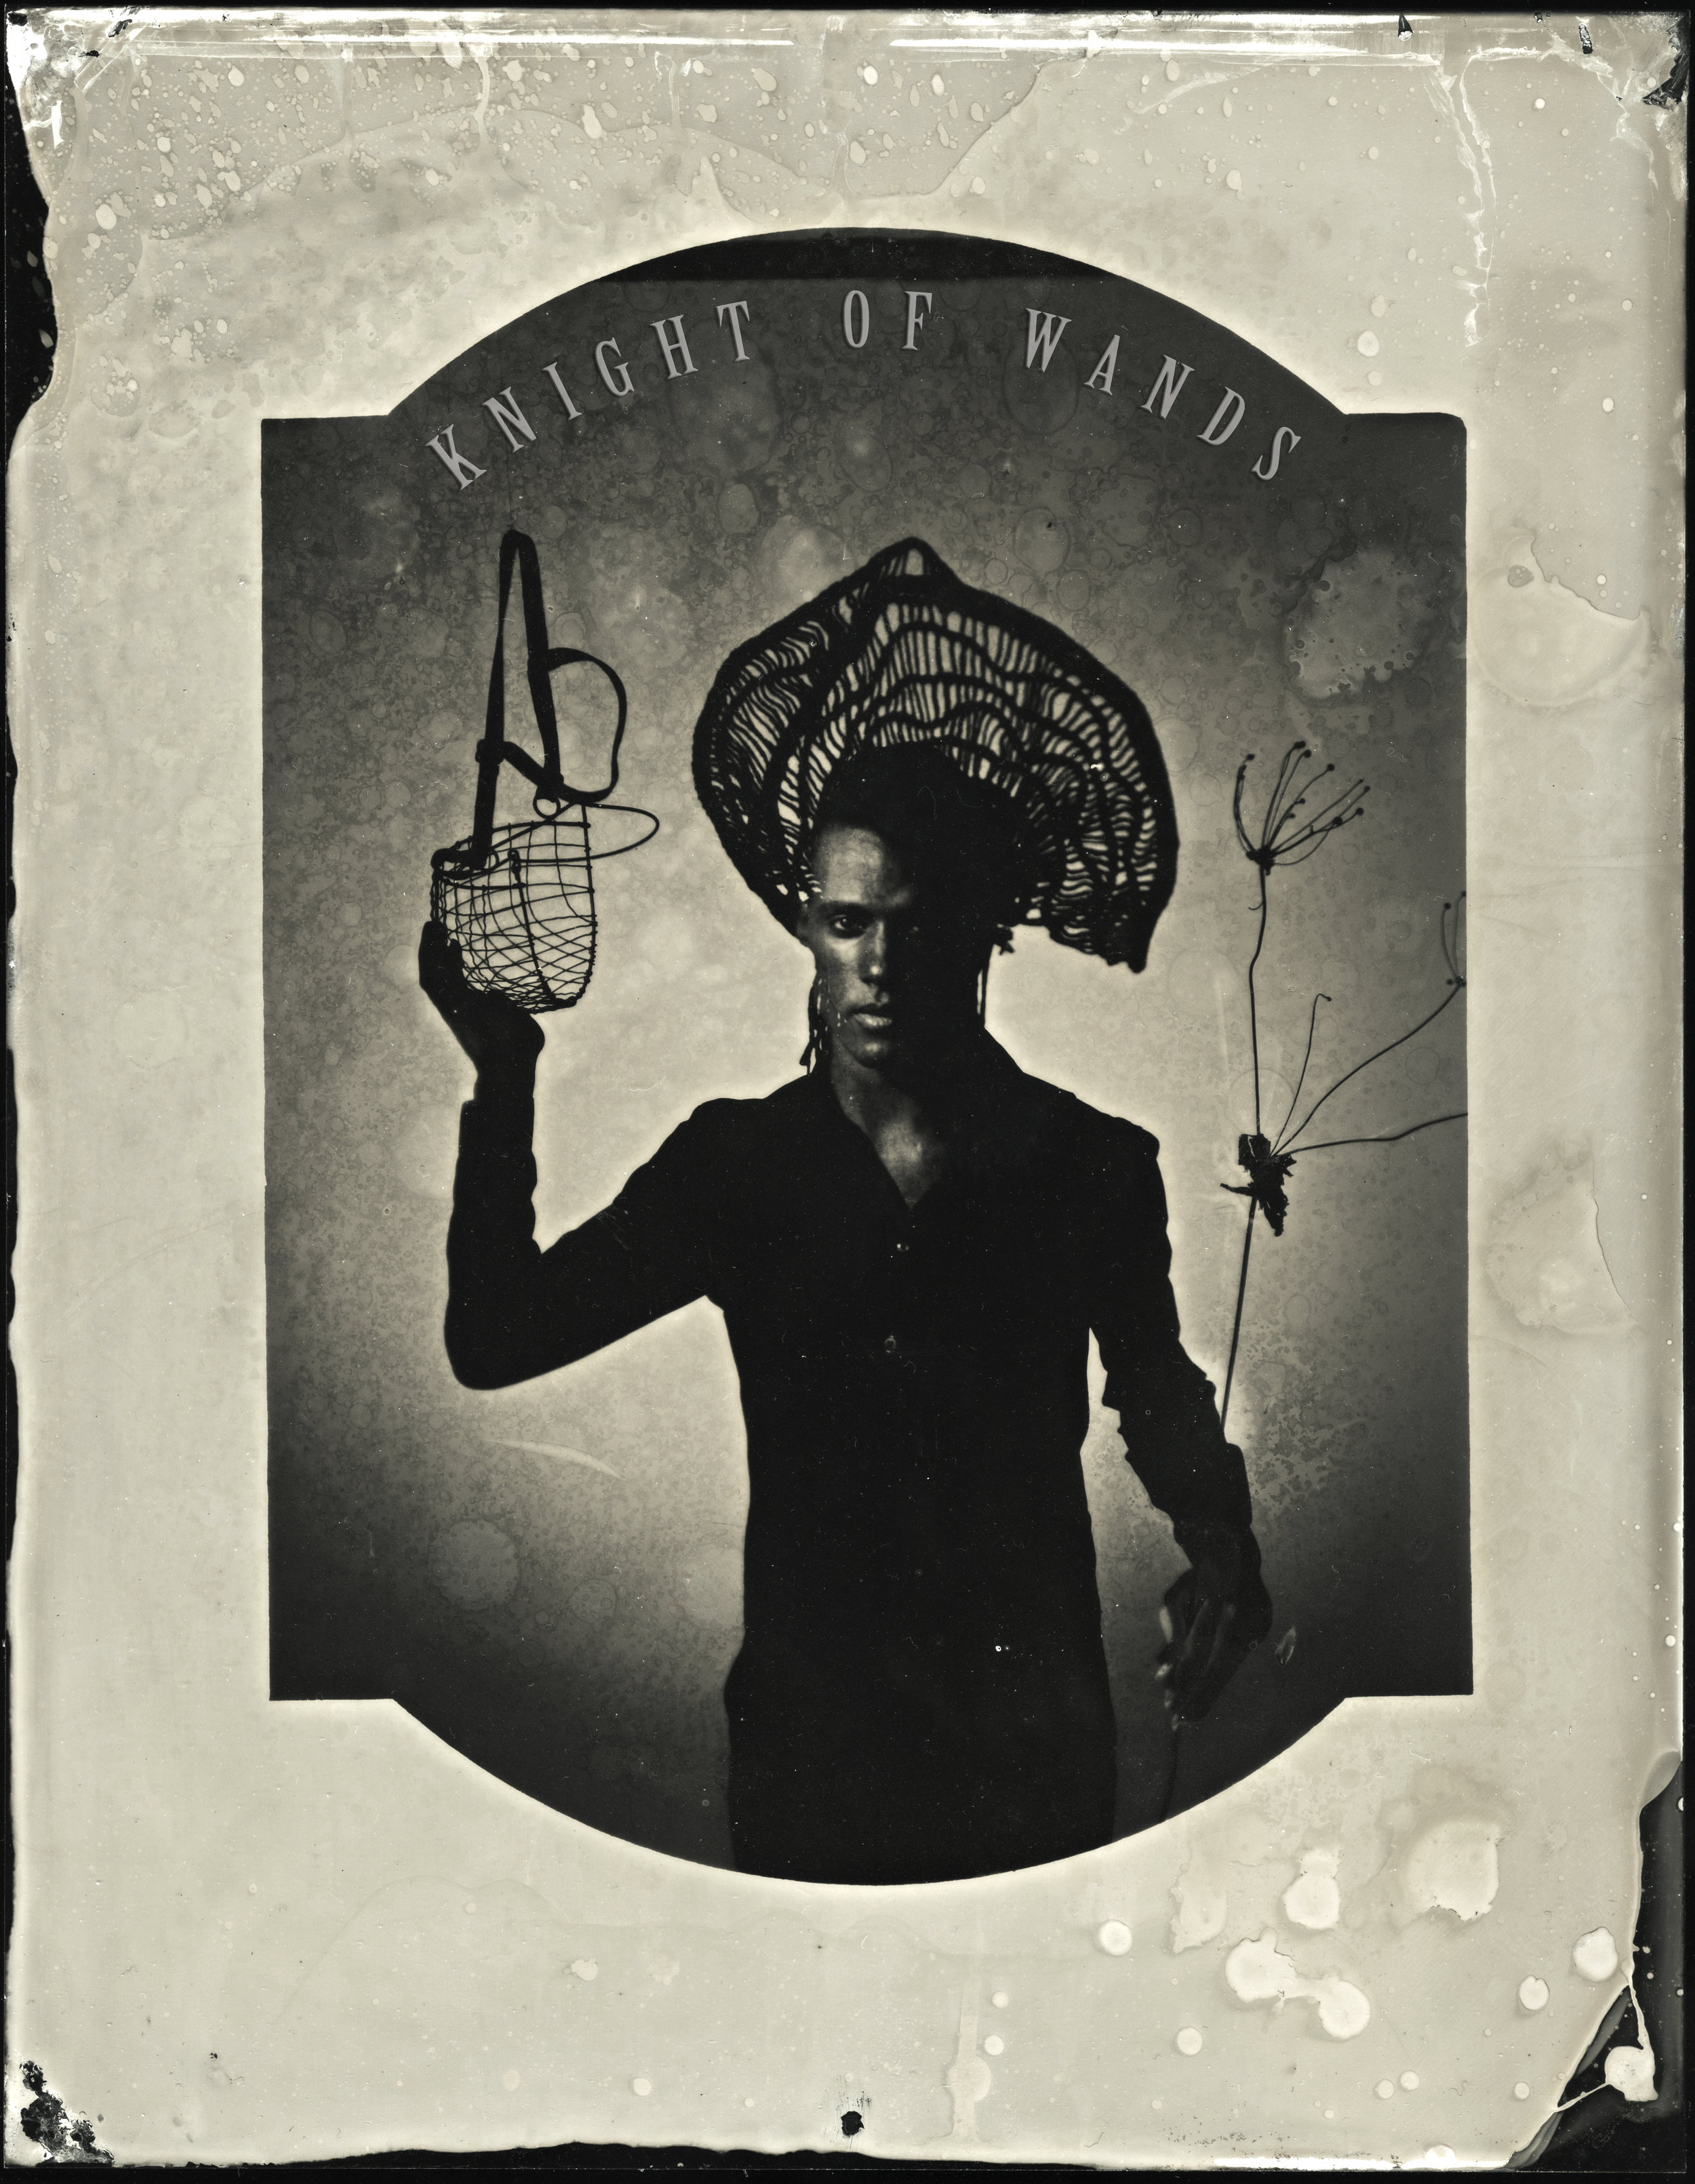 Eric Bailles - Knight of Wands